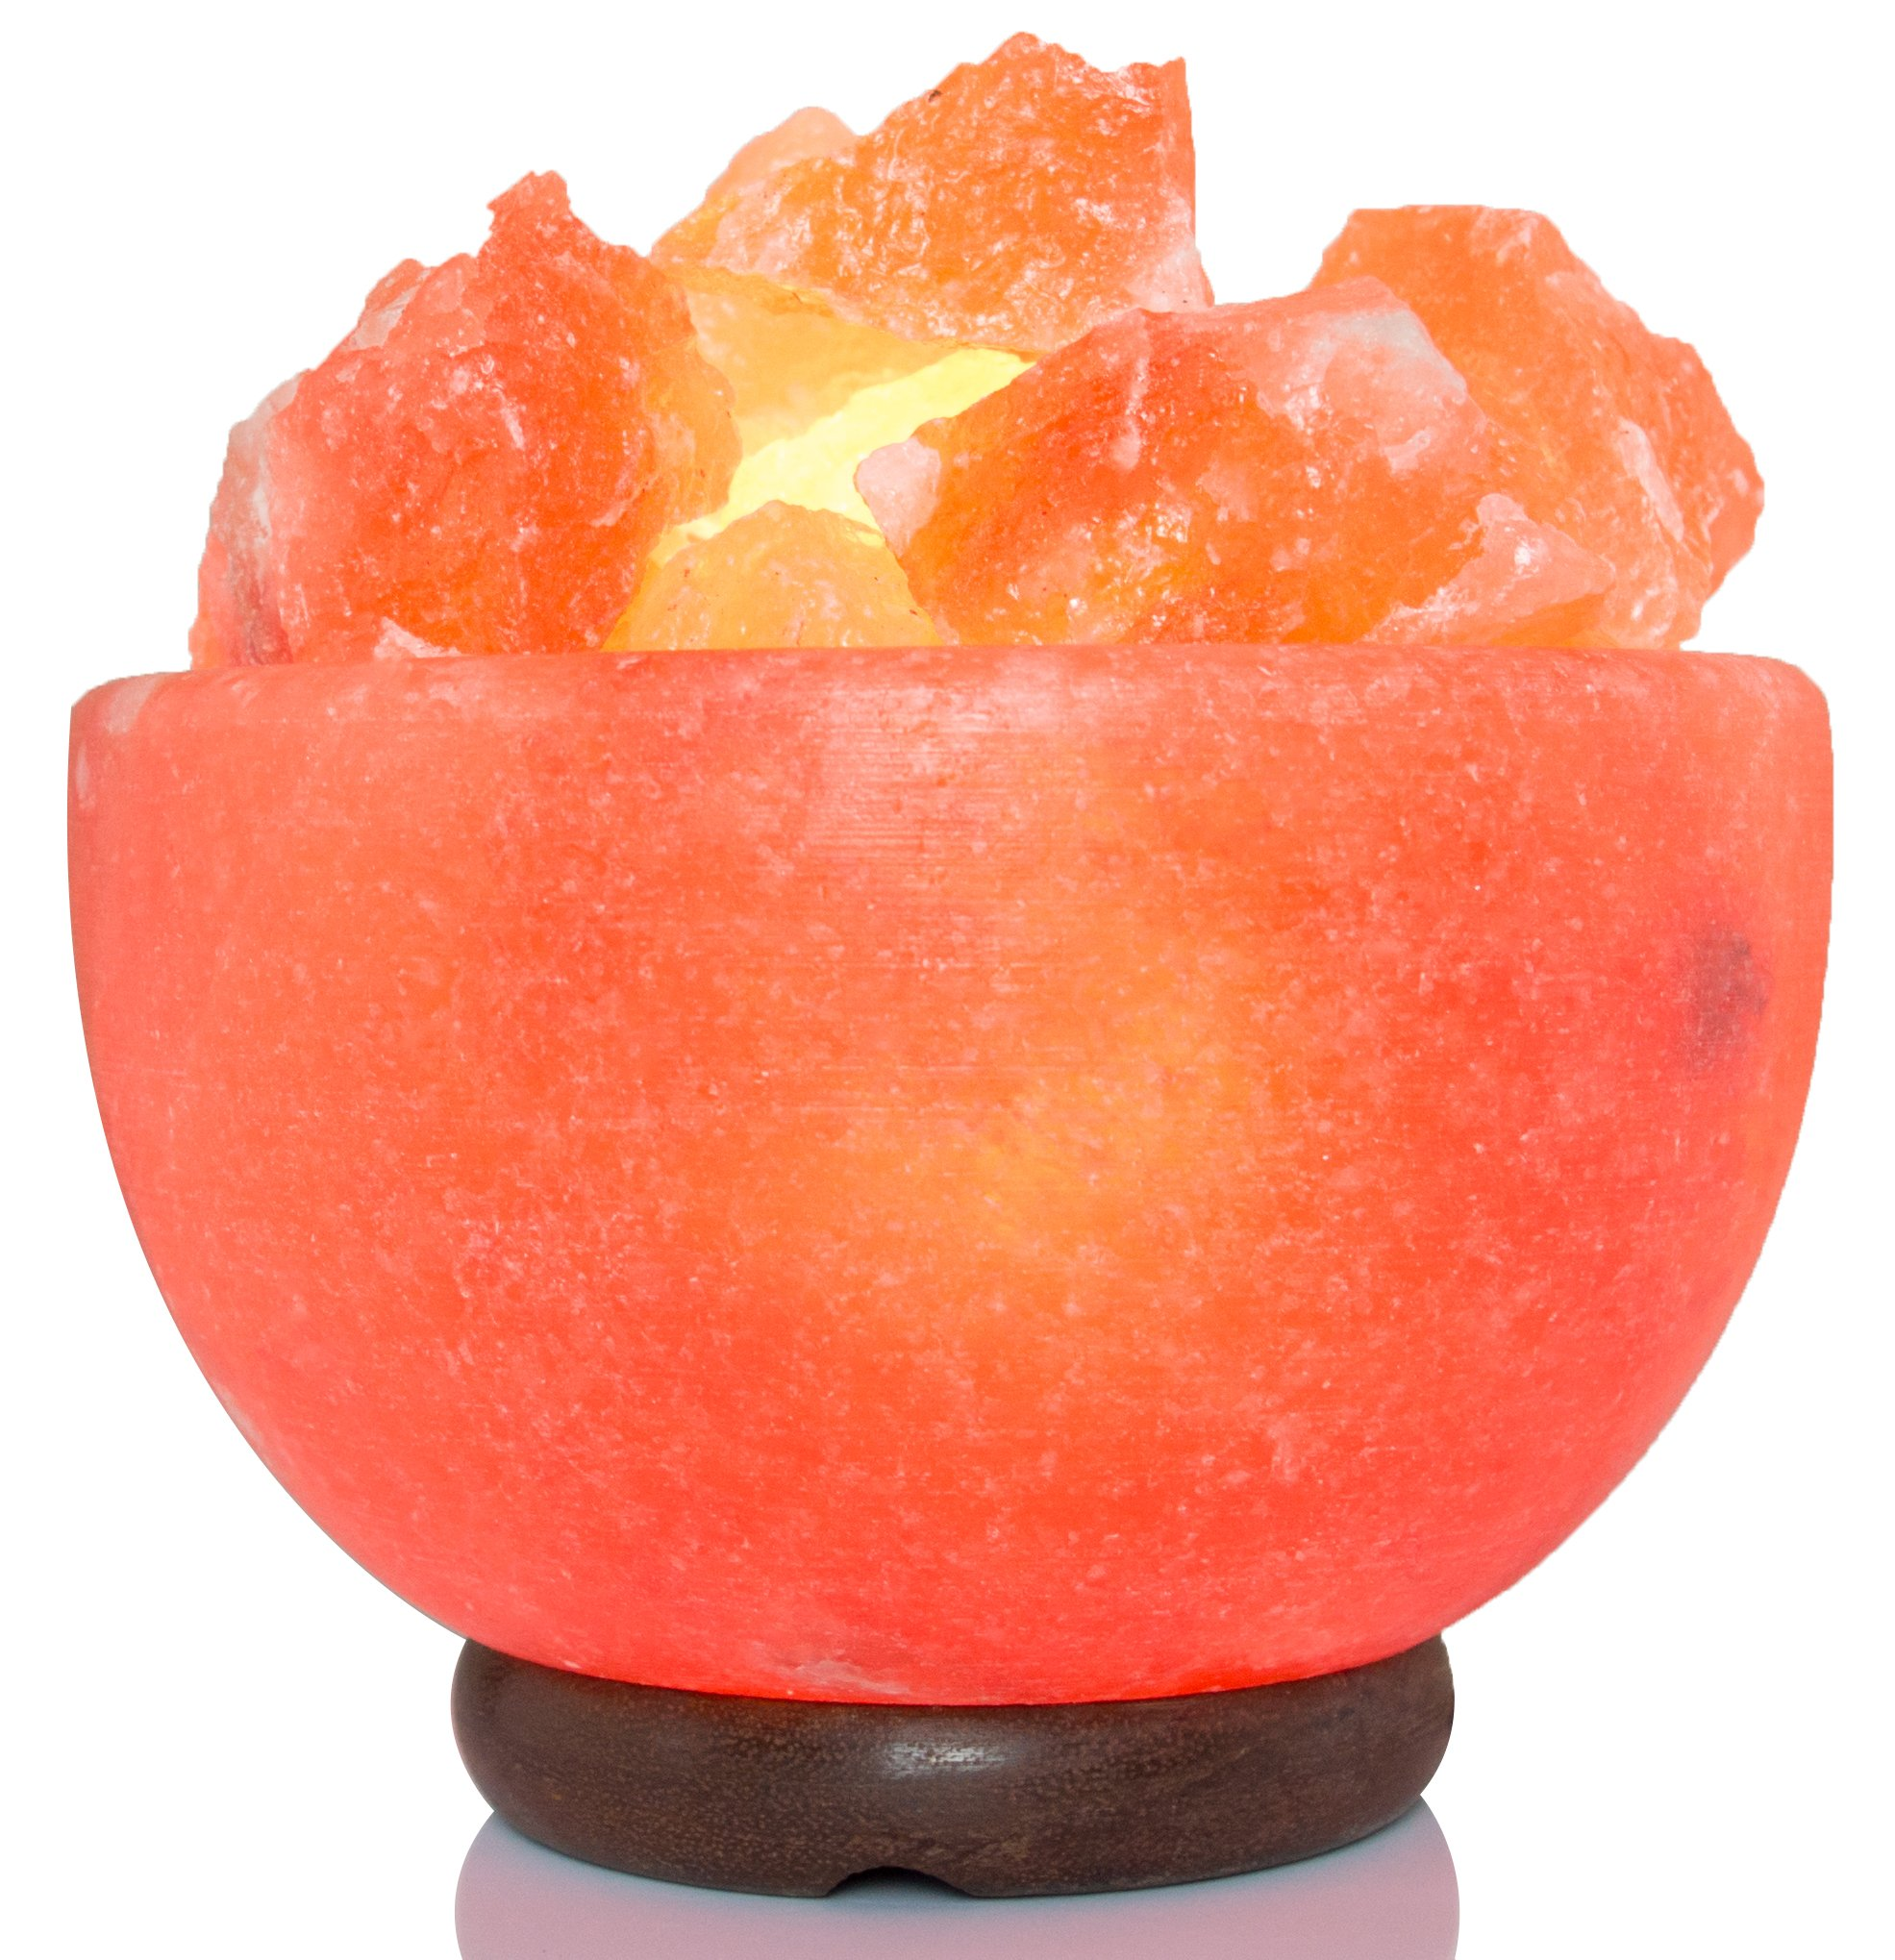 IKON NL-02 Himalayan Salt Lamp Bowl Shape with Salt Chips 6 feet UL-Approved Cord with Dimmer Switch, Orange